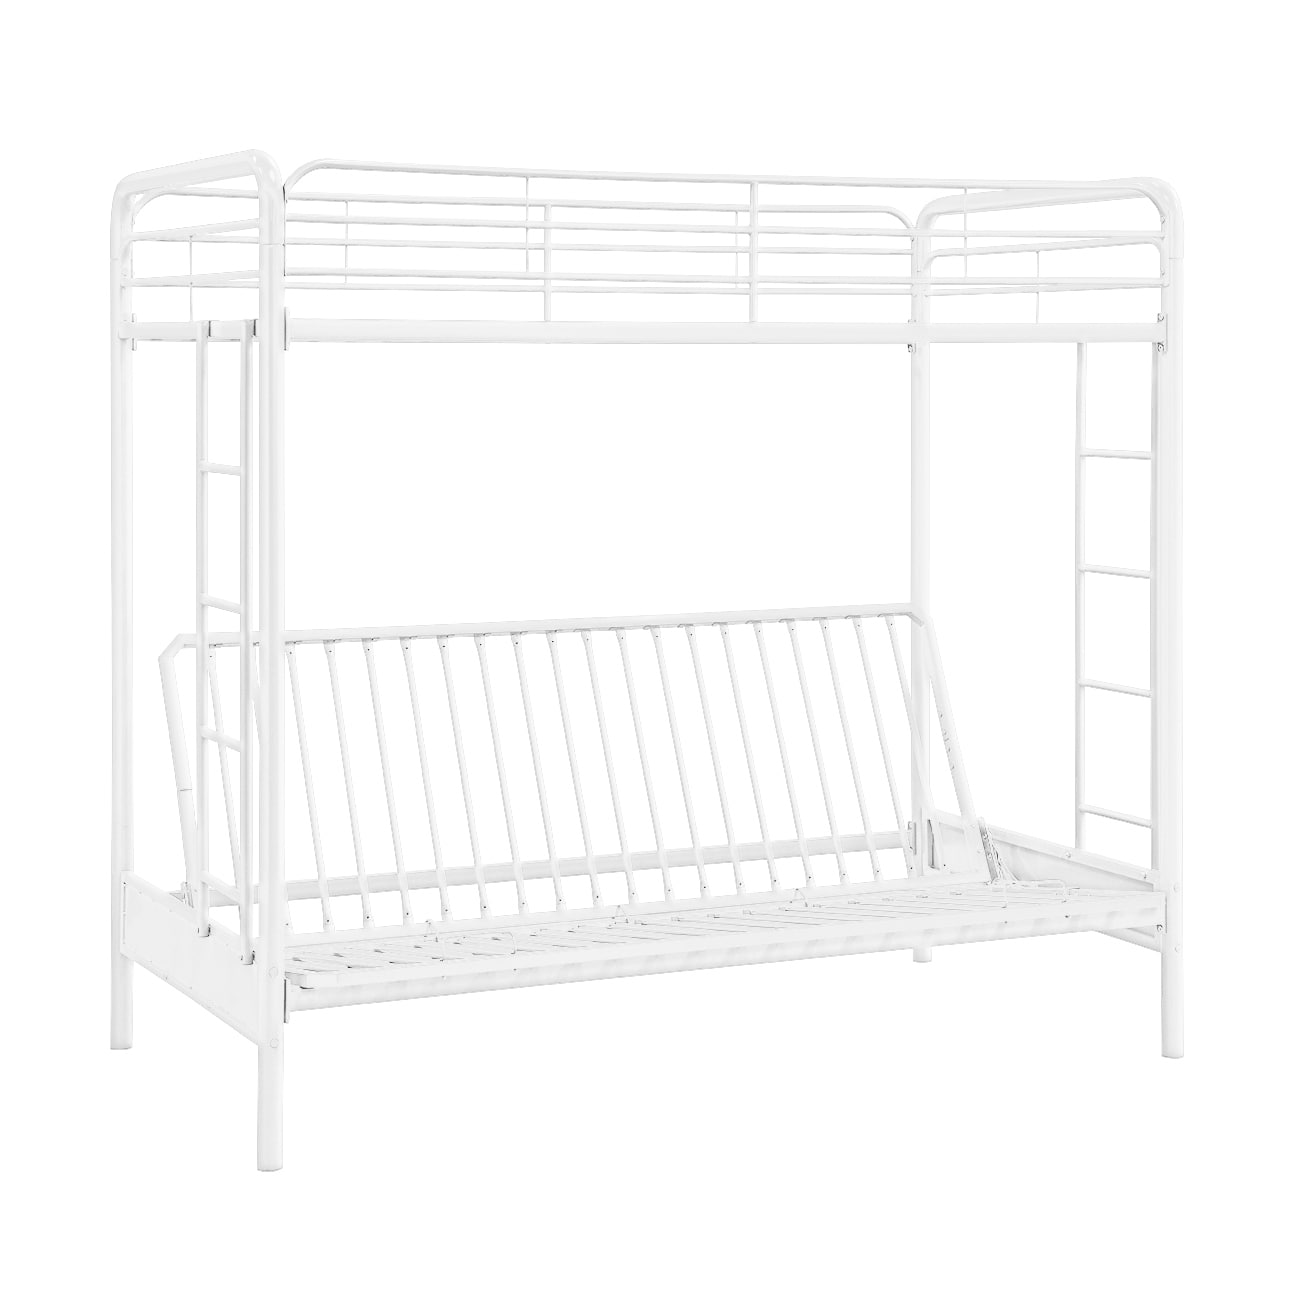 Dhp Twin Over Futon White Metal Bunk Bed Free Shipping Today Com 9751457